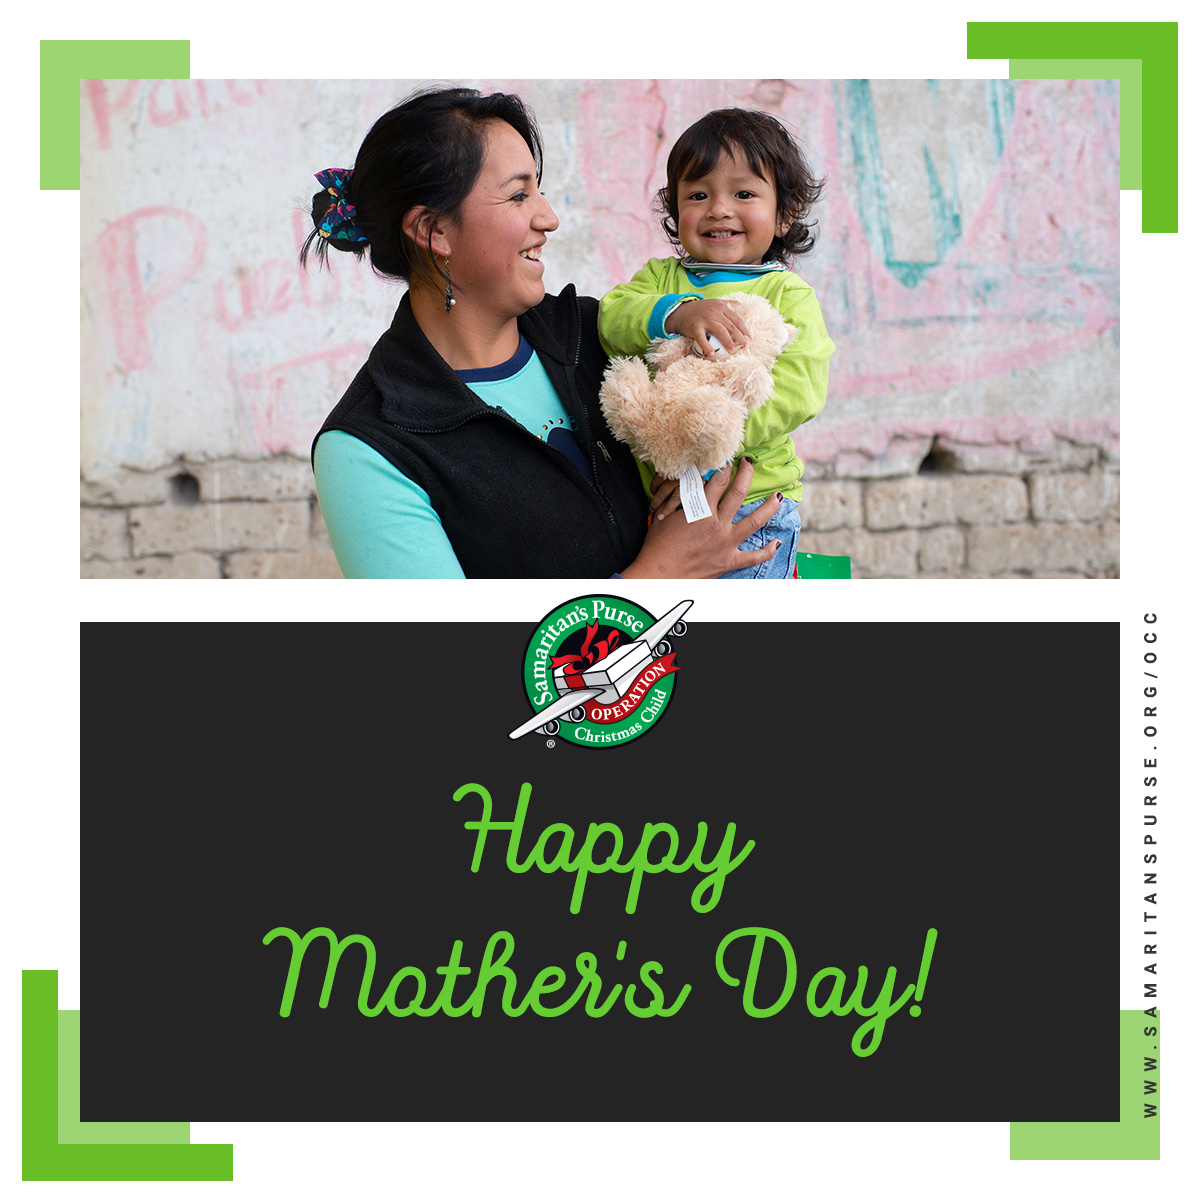 Happy #MothersDay from Operation Christmas Child!